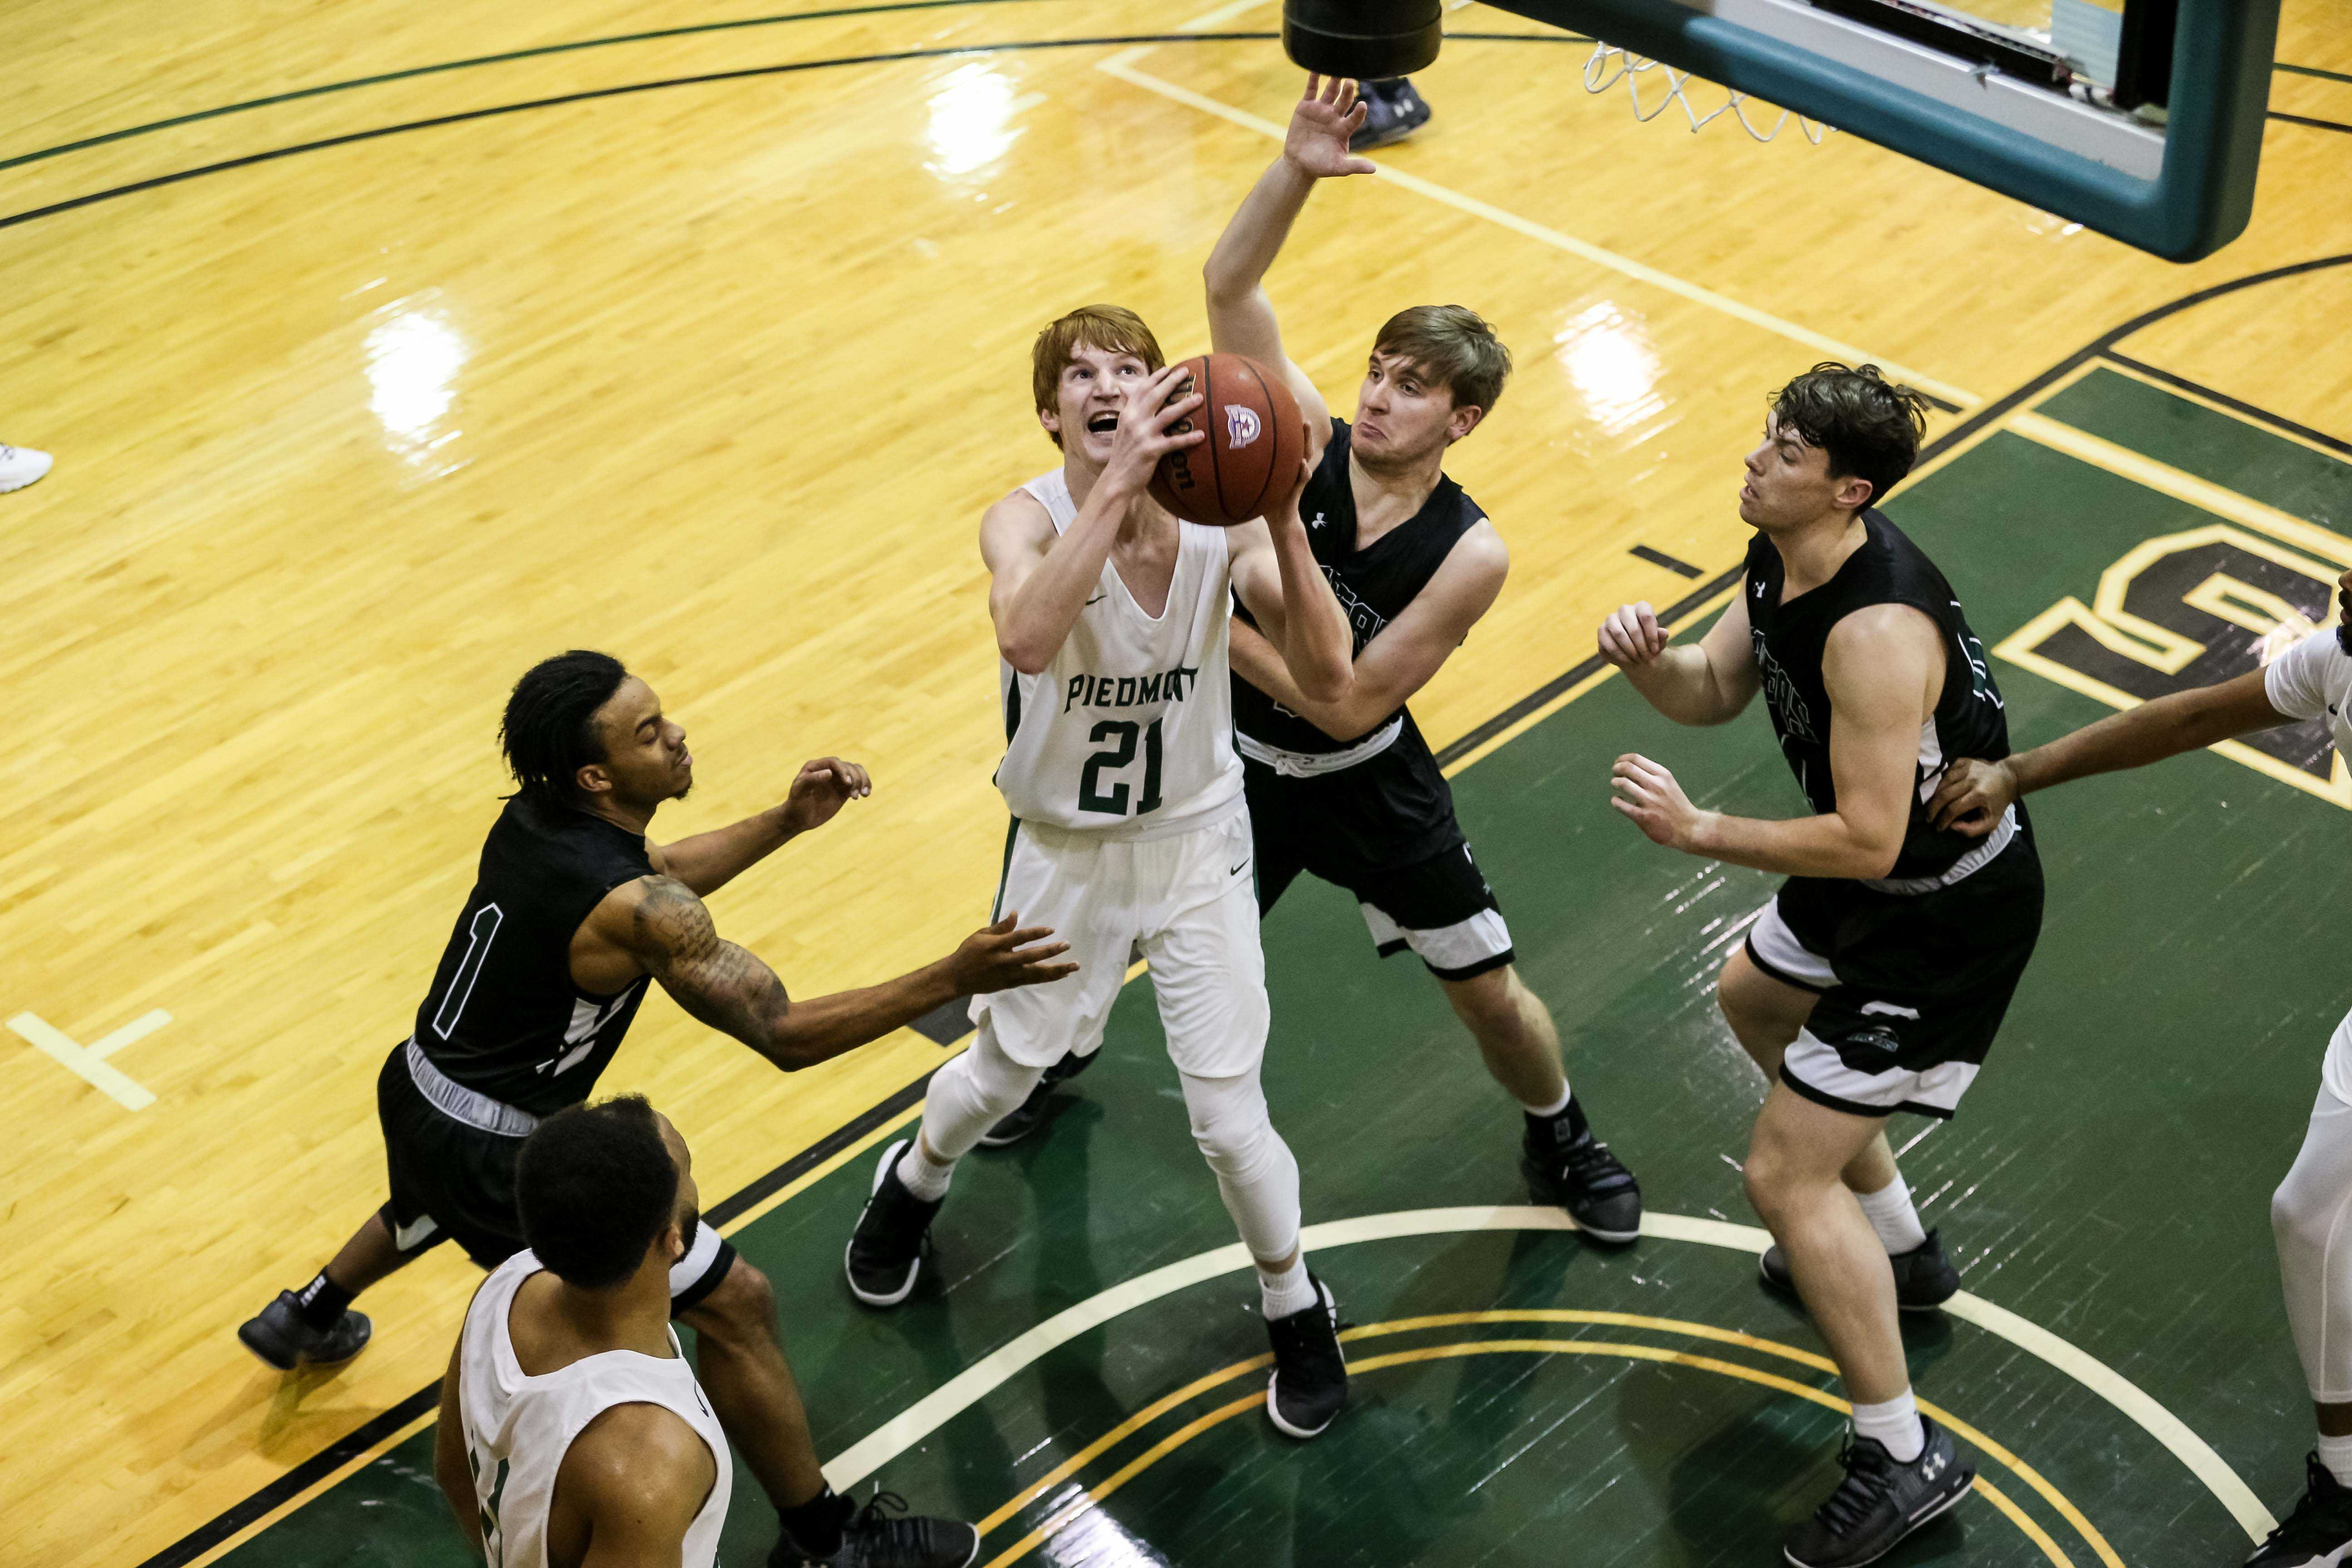 Piedmont College MBB.  (Photo: Karl L. Moore)